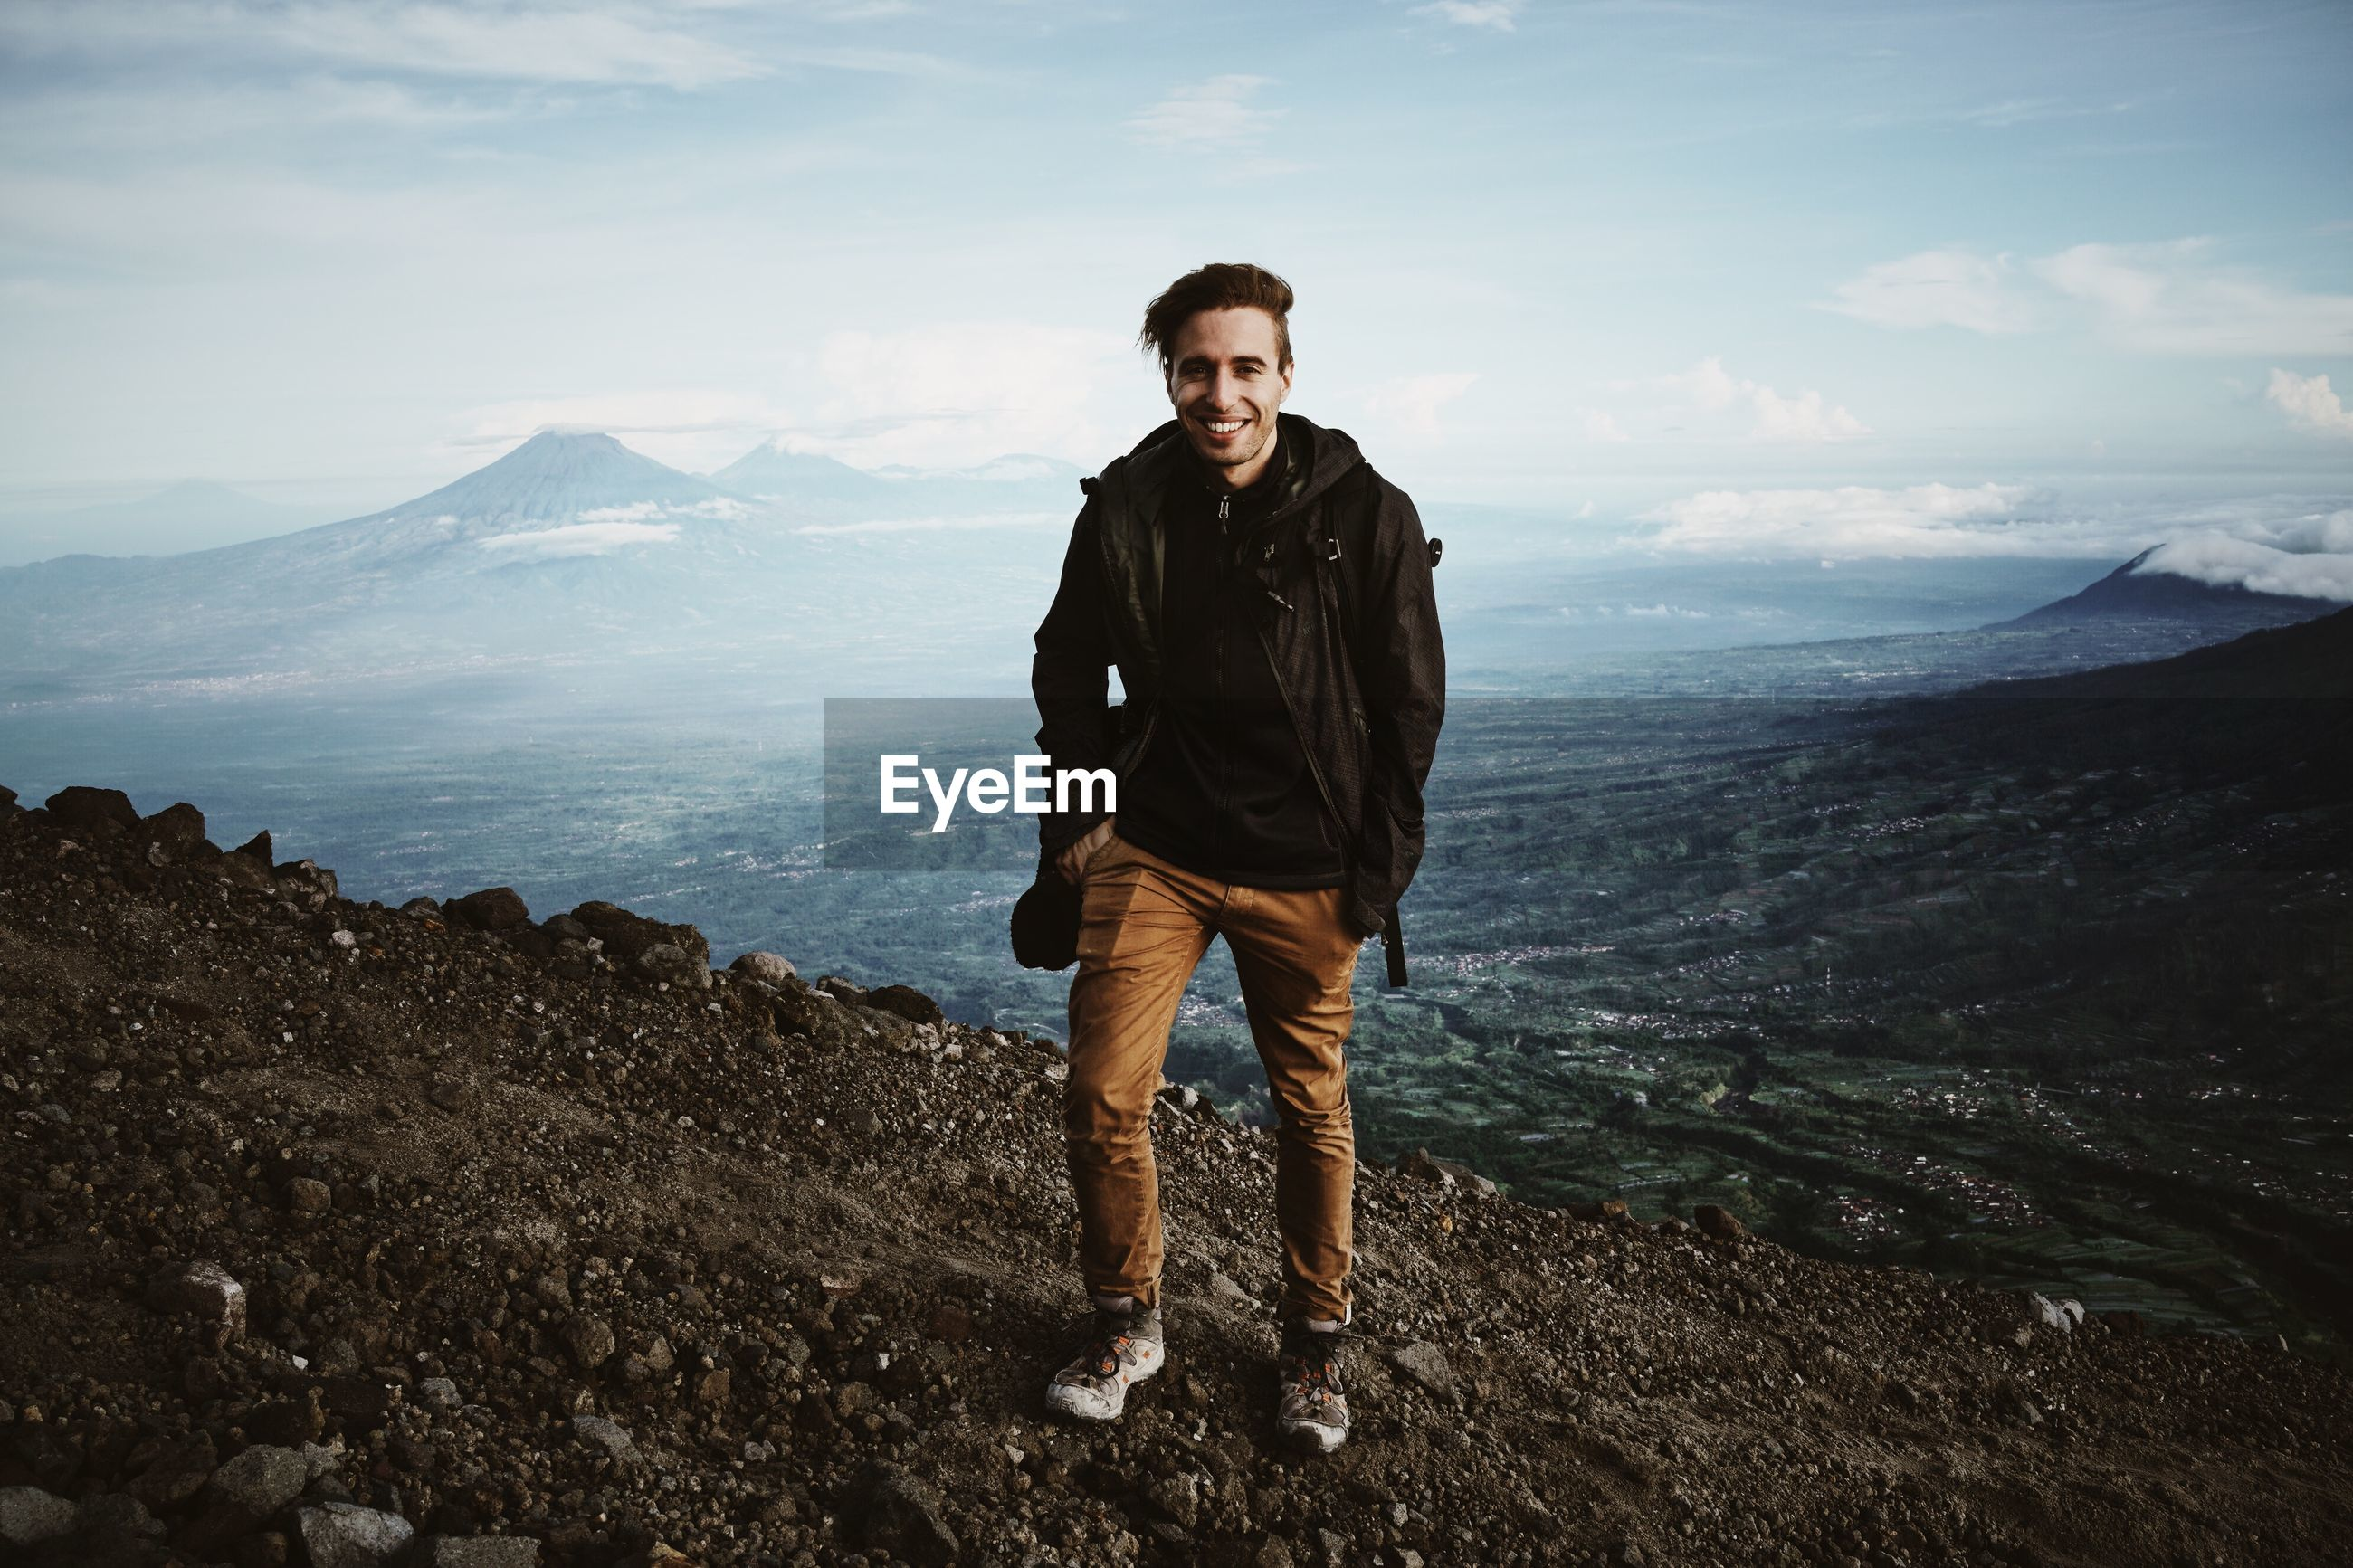 Portrait of young man hiking on mountain against sky